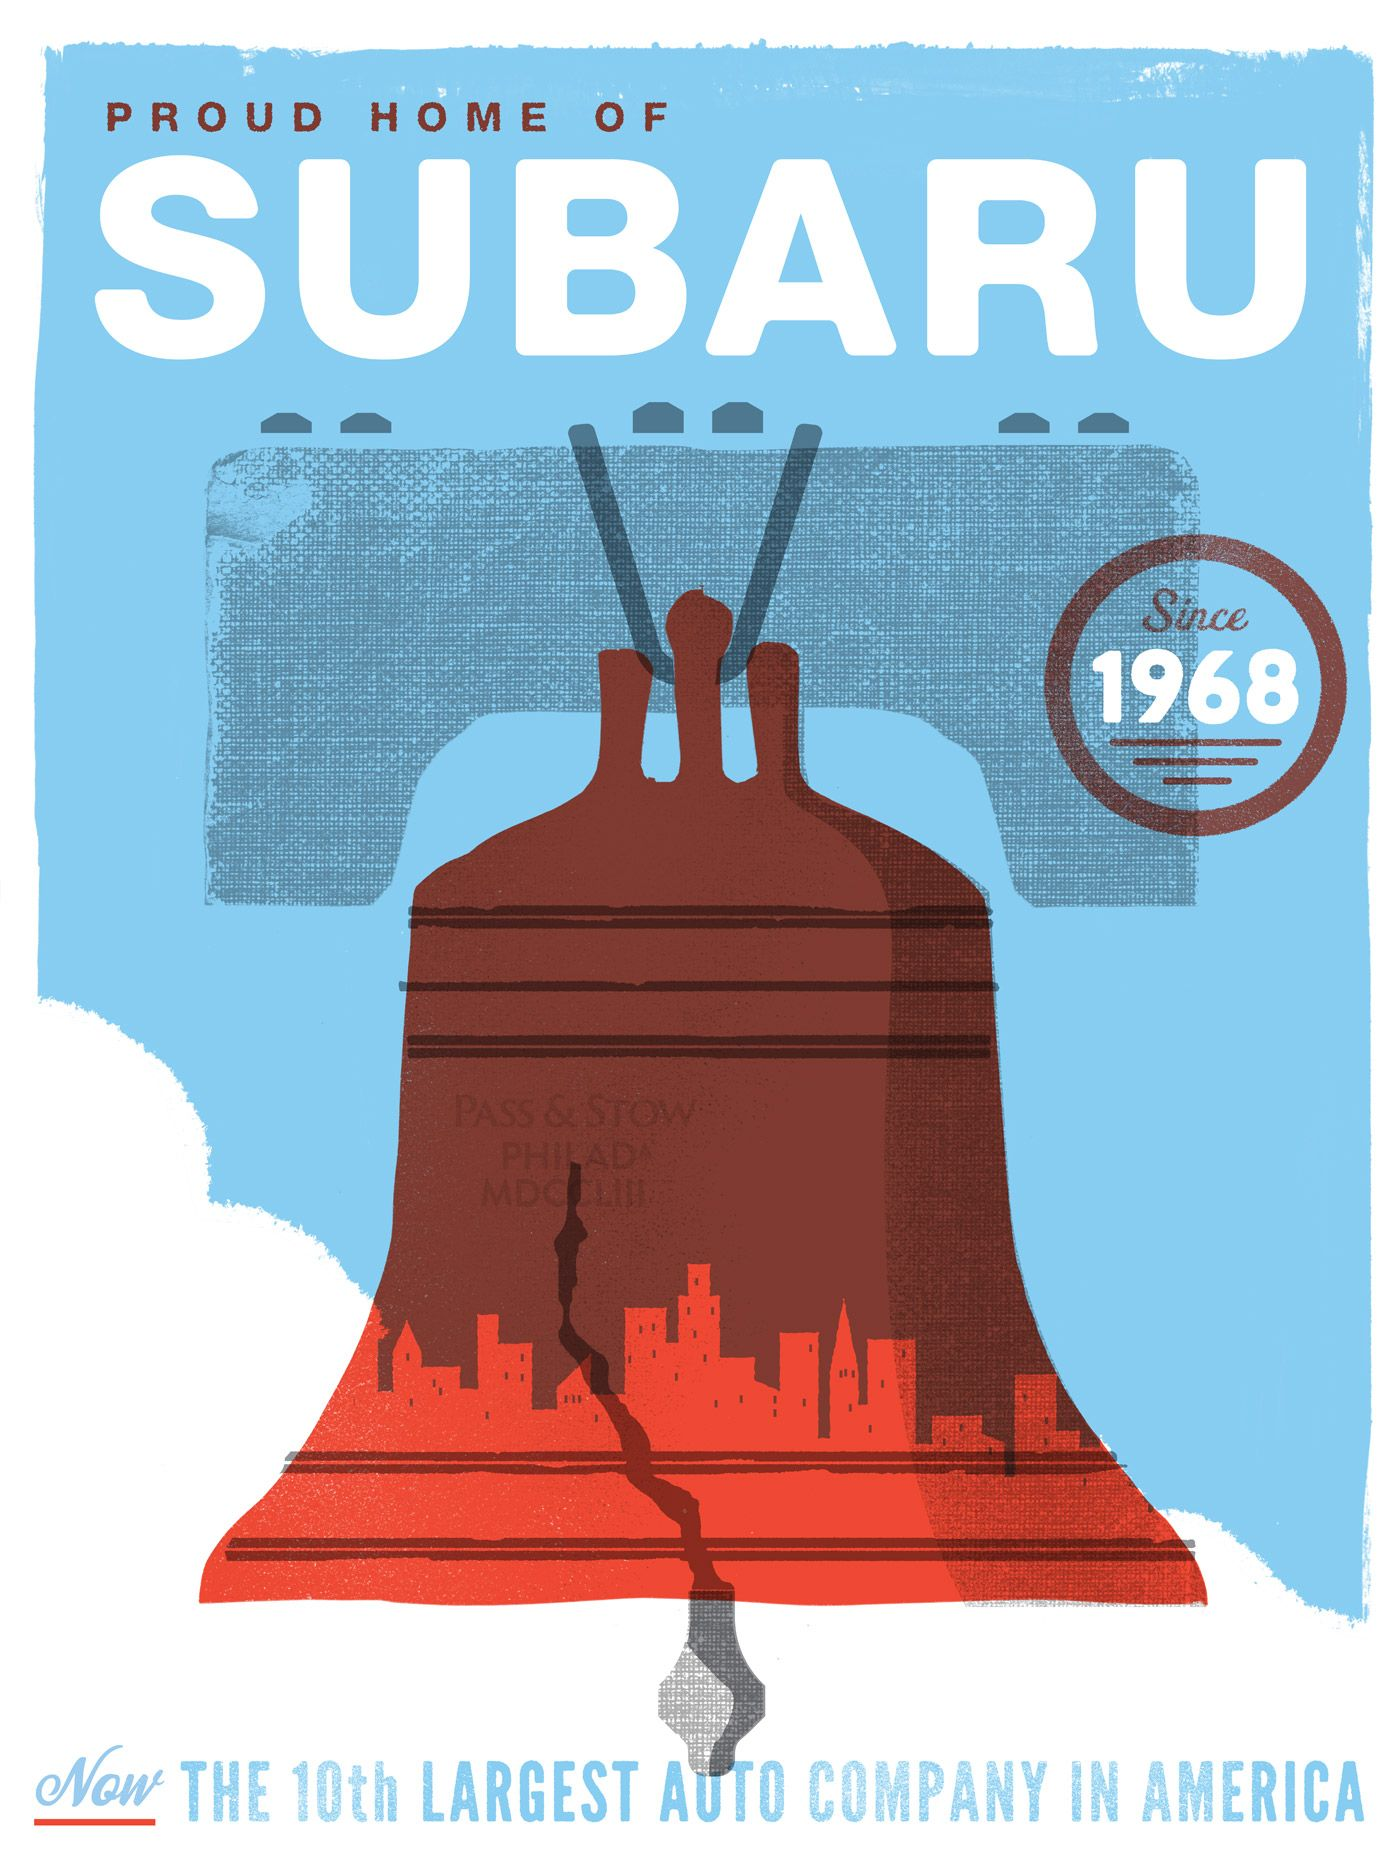 Subaru Philadelphia Poster Series The Heads Of State Moving - Subaru philadelphia